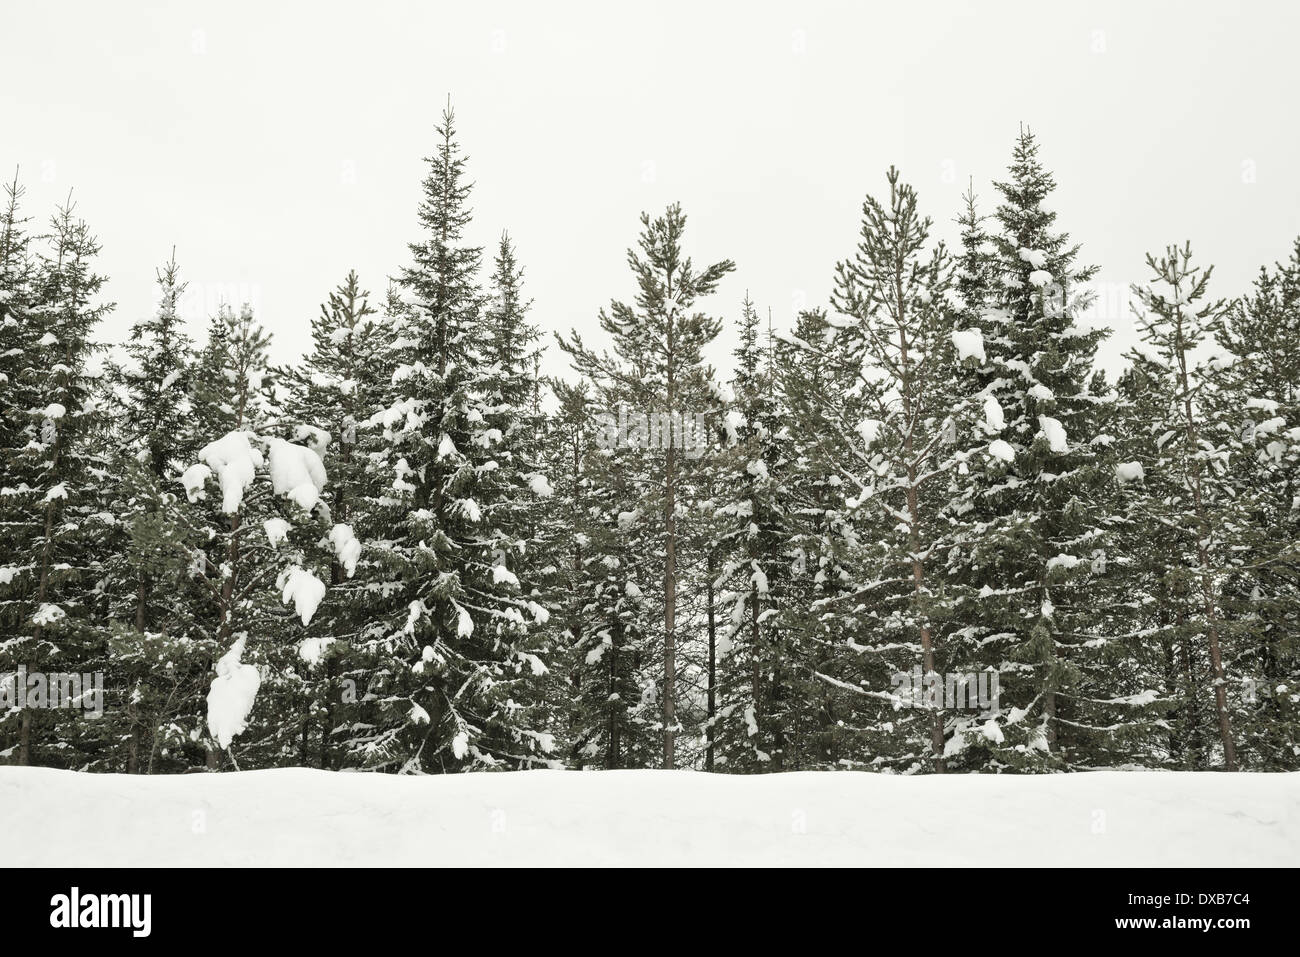 Scandinavia - Snow Covered Forest in Northern Sweden - Stock Image